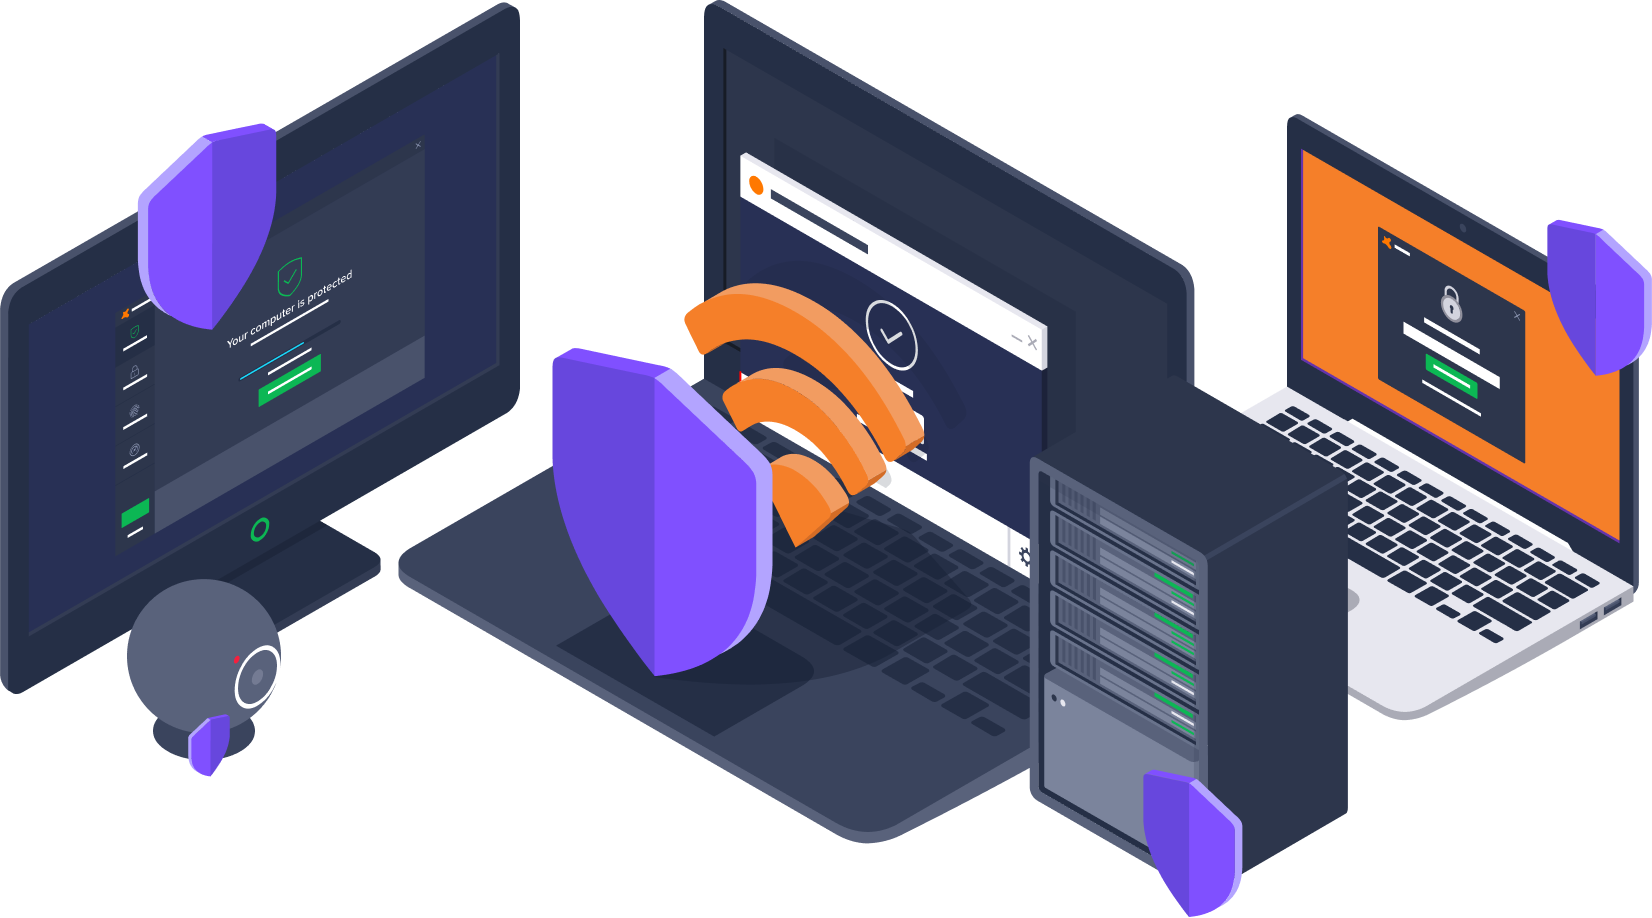 SMB cybersecurity solutions from Avast